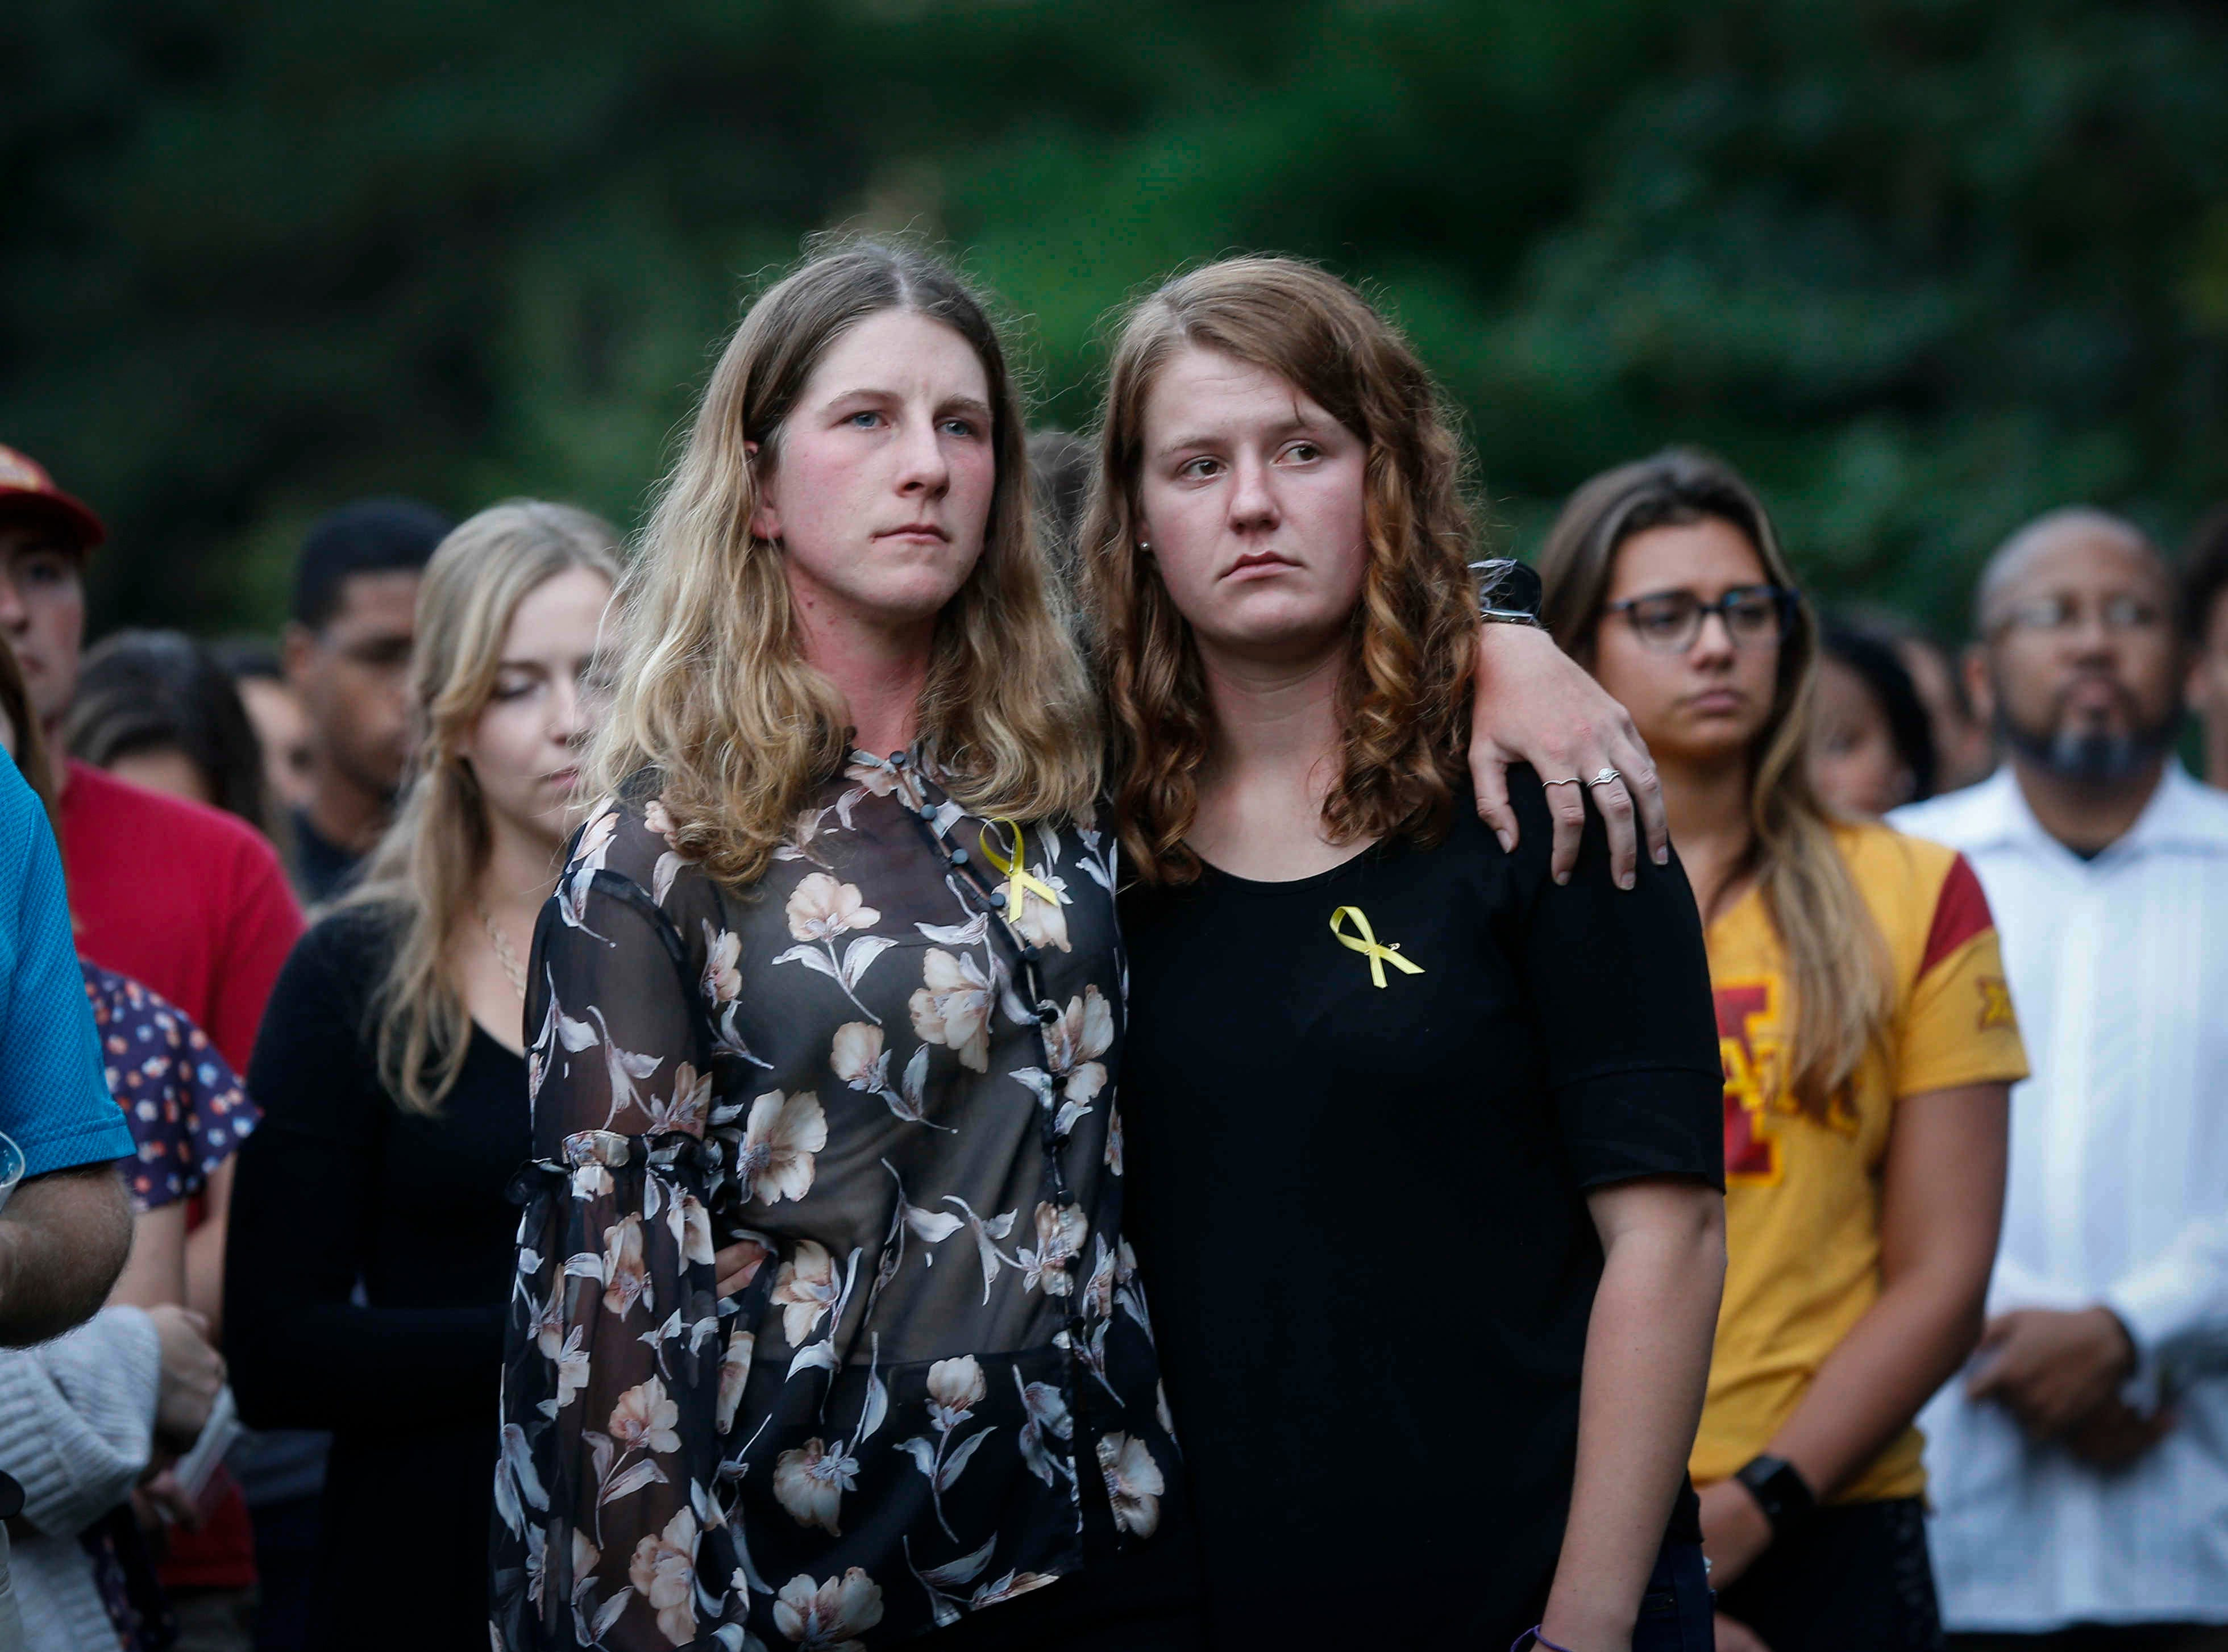 Iowa State students and friends of Celia Barquin Arozamena mourn their fellow student during a vigil on Wednesday, Sept. 19, 2018, in Ames.